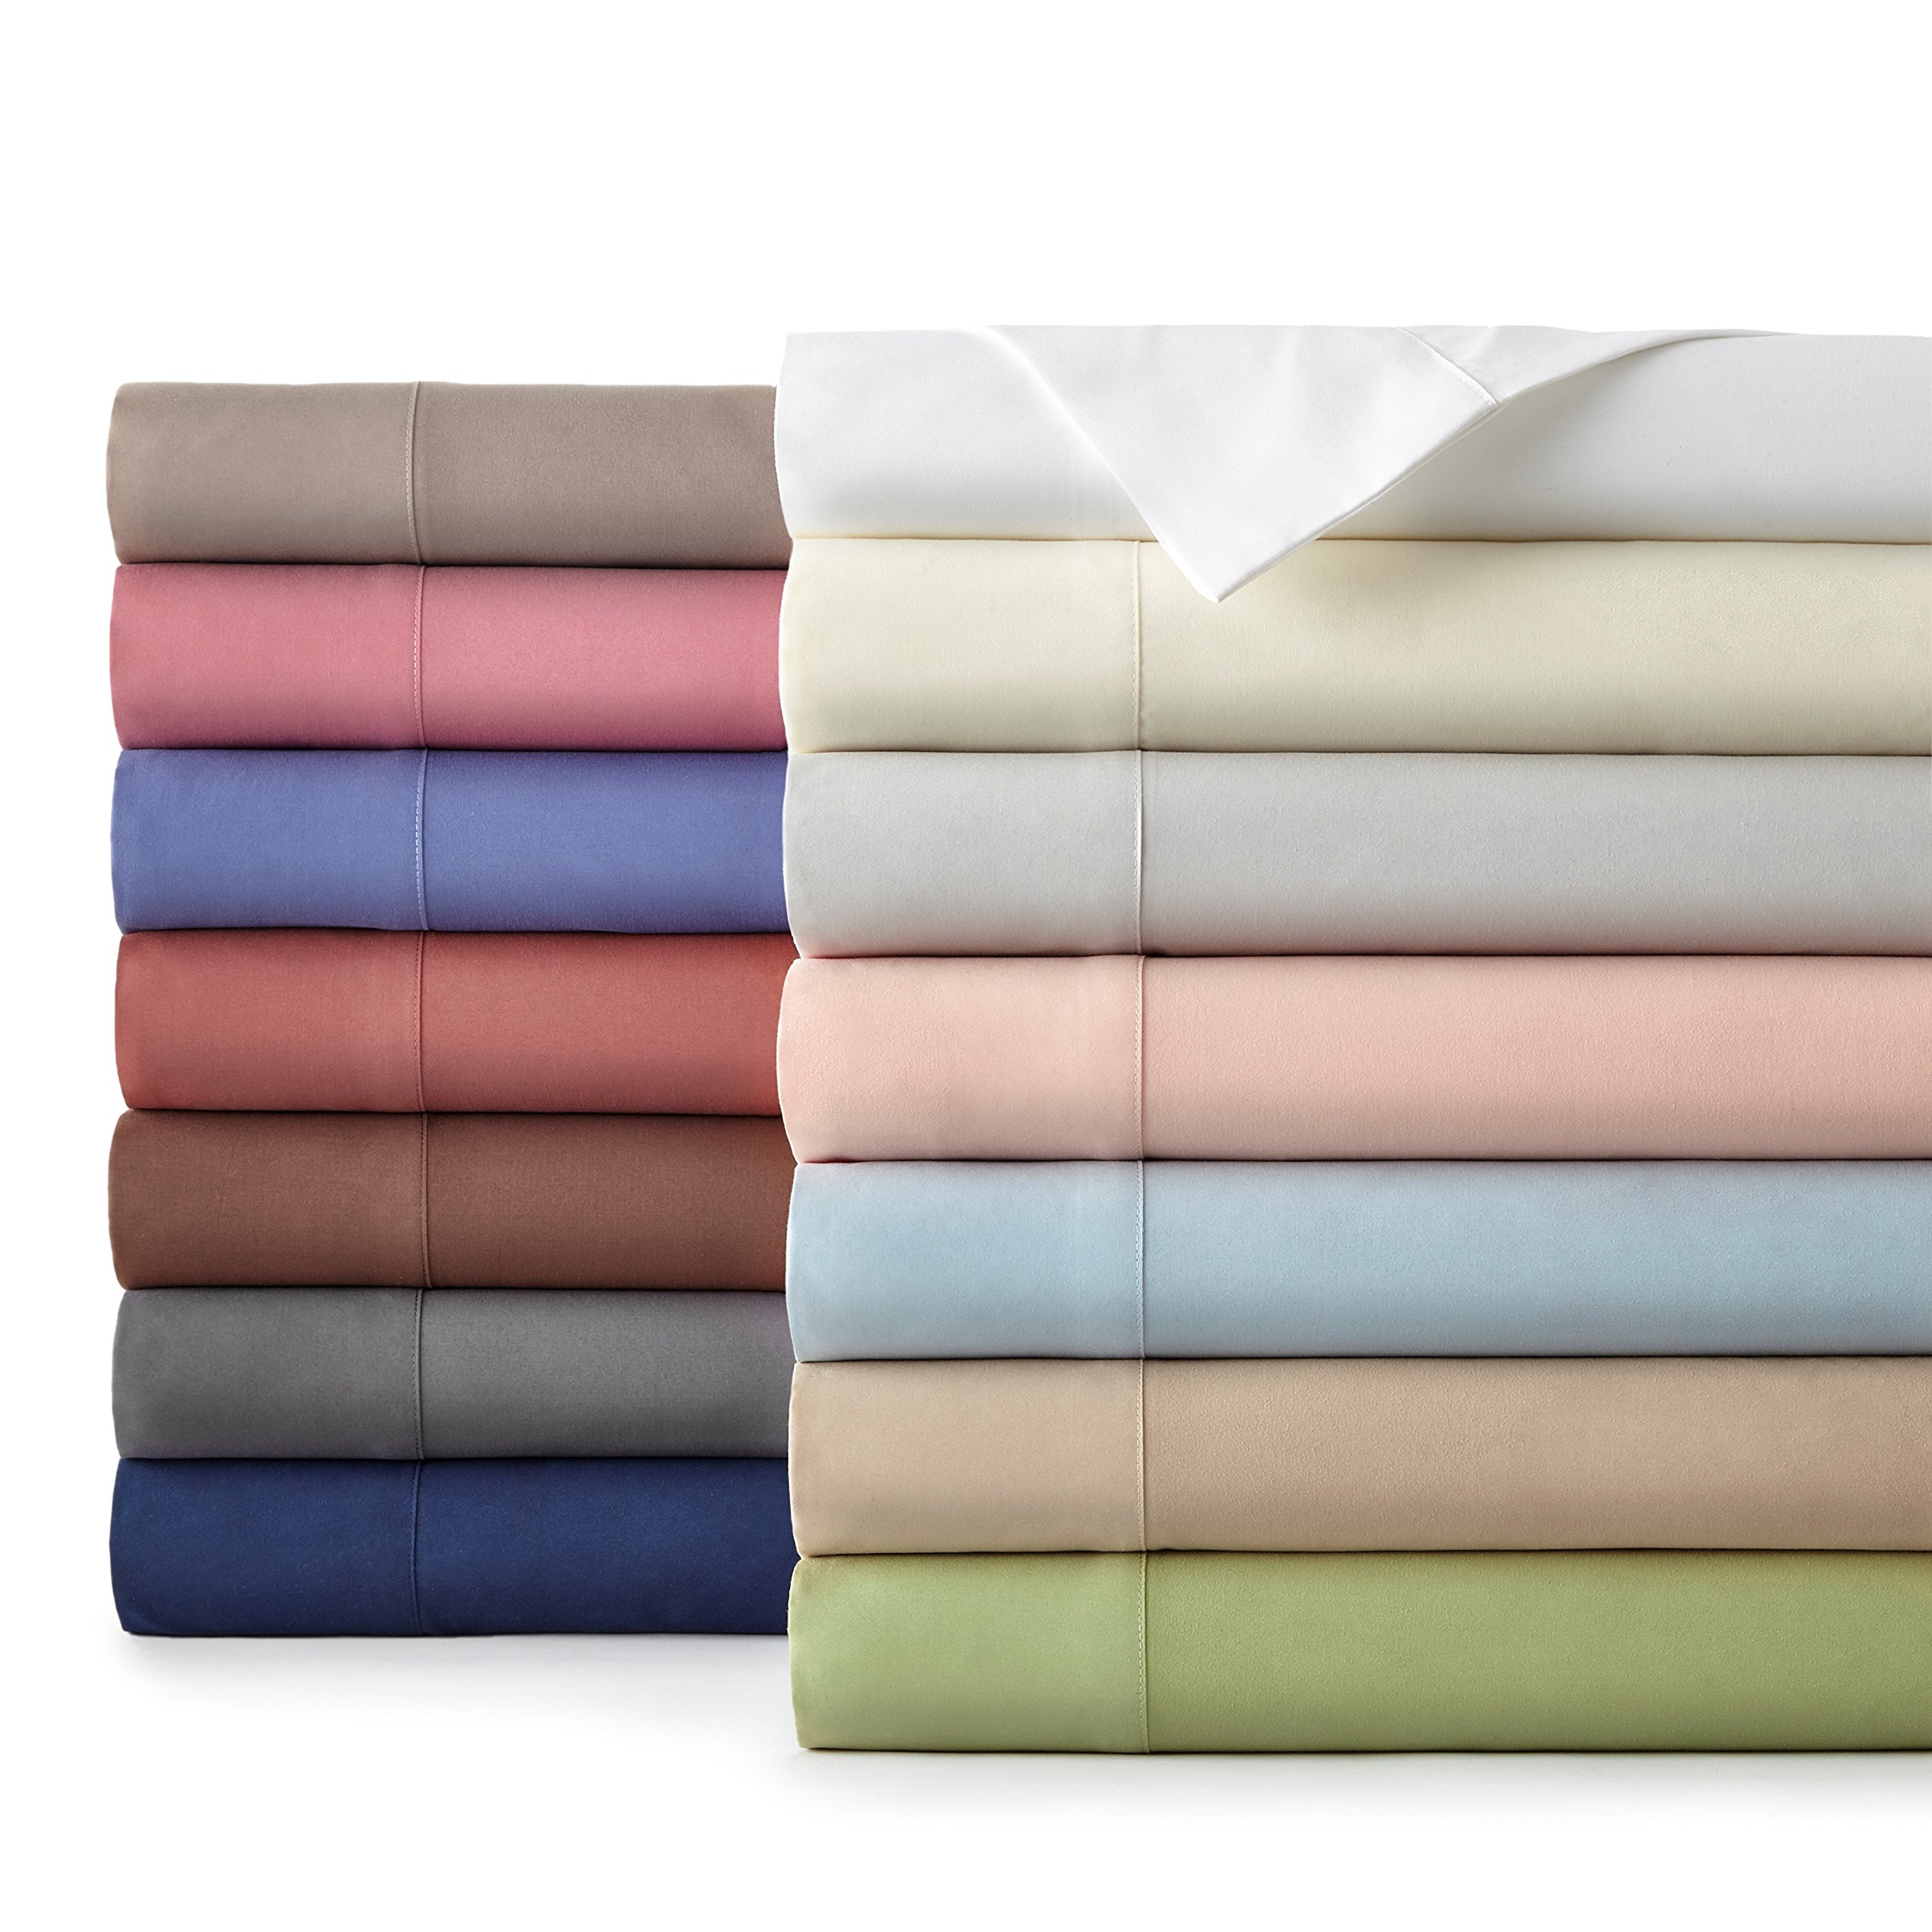 Southshore Essentials - 6 Piece Brushed Microfiber Sheet Set, Hint of Green, Queen by Southshore Fine Living, Inc. (Image #2)